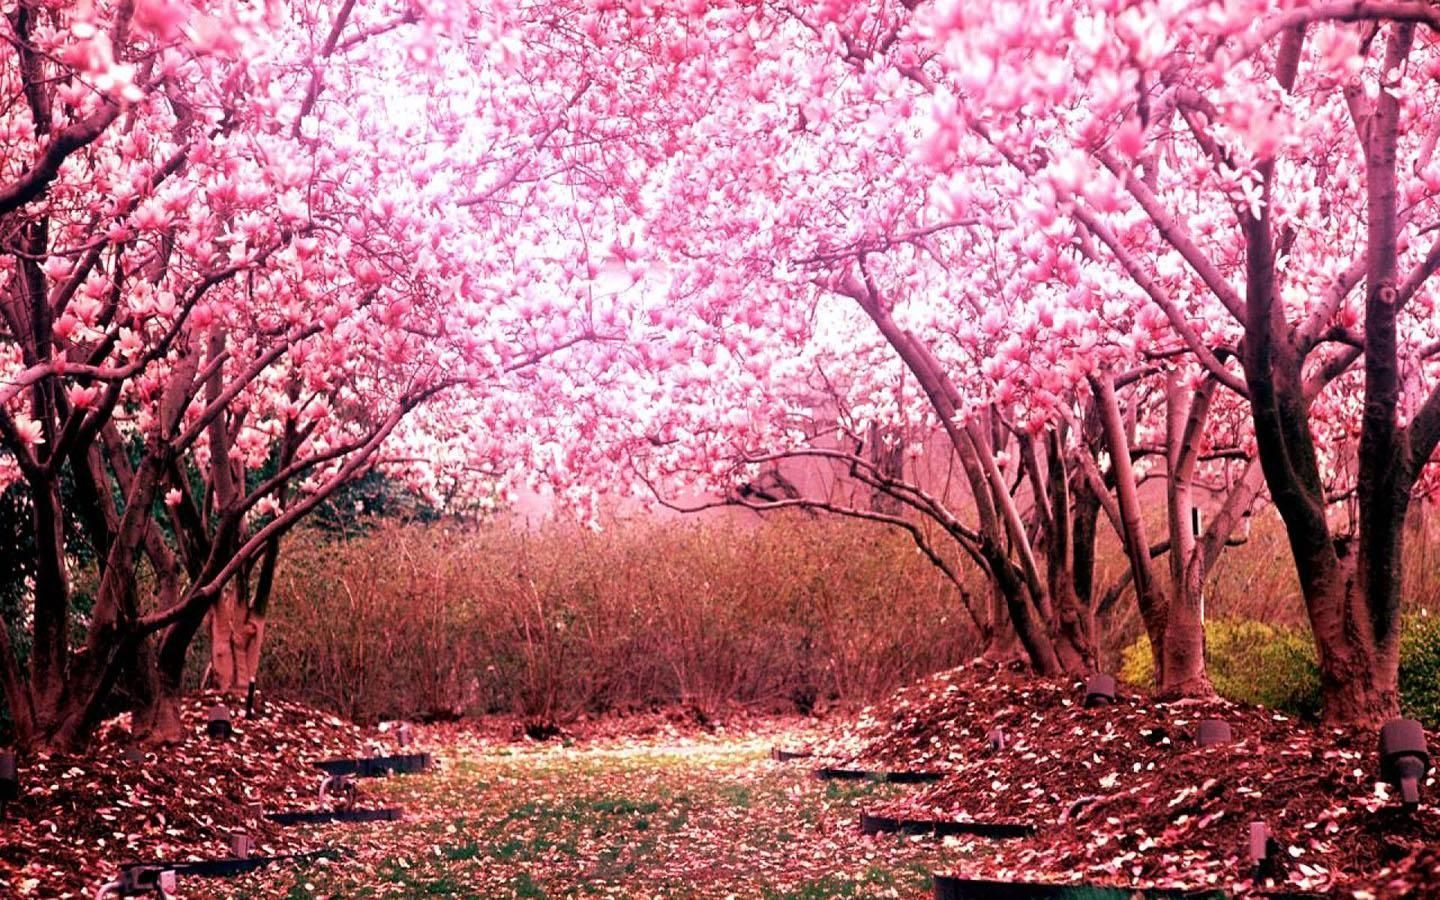 Awesome Japanese Pink Aesthetic Laptop Wallpaper Photos In 2020 Cherry Blossom Background Cherry Blossom Wallpaper Cherry Blossom Tree